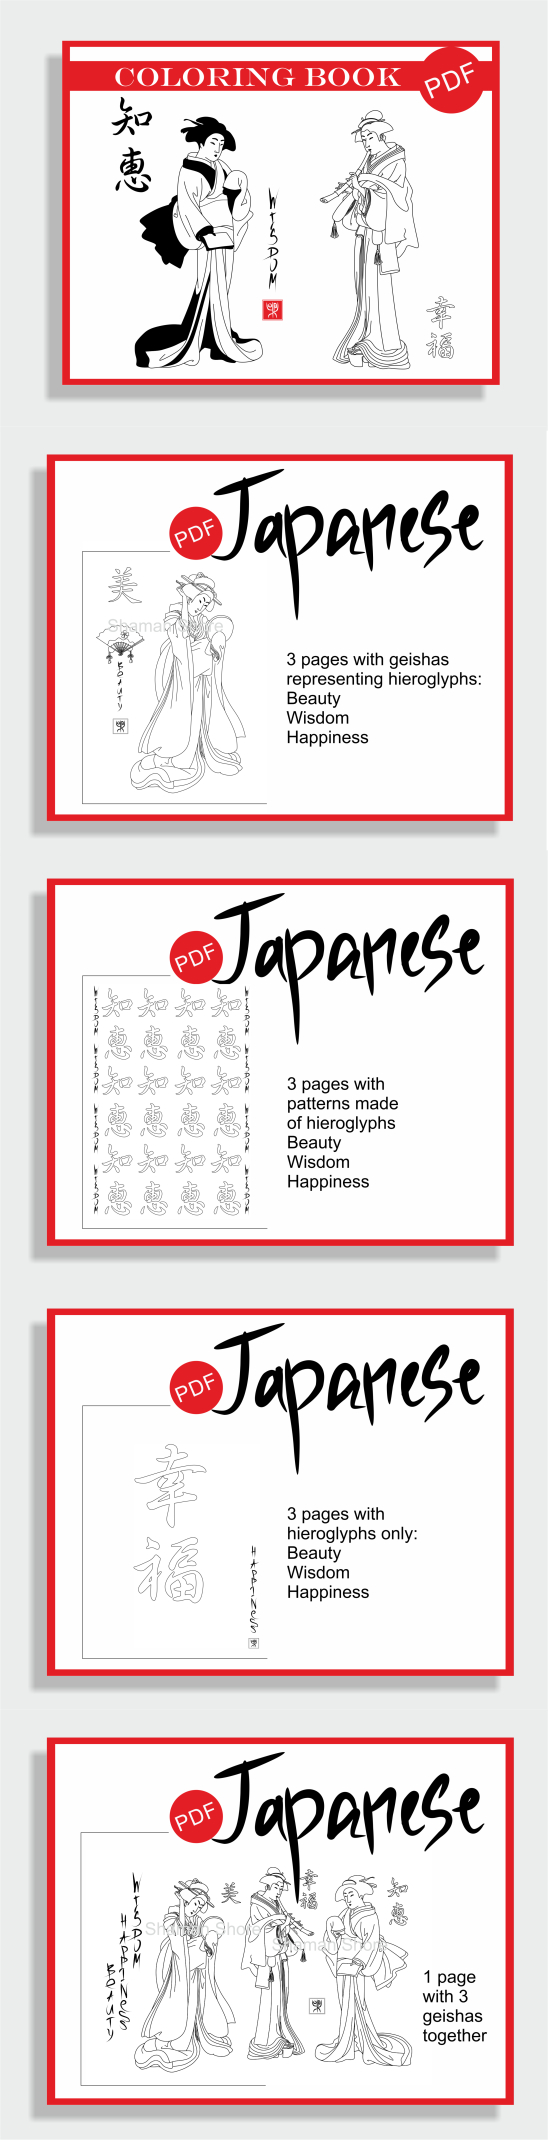 Japanese Adult Coloring Book PDF Art Digital Pages Geishas Printable Christmas In July